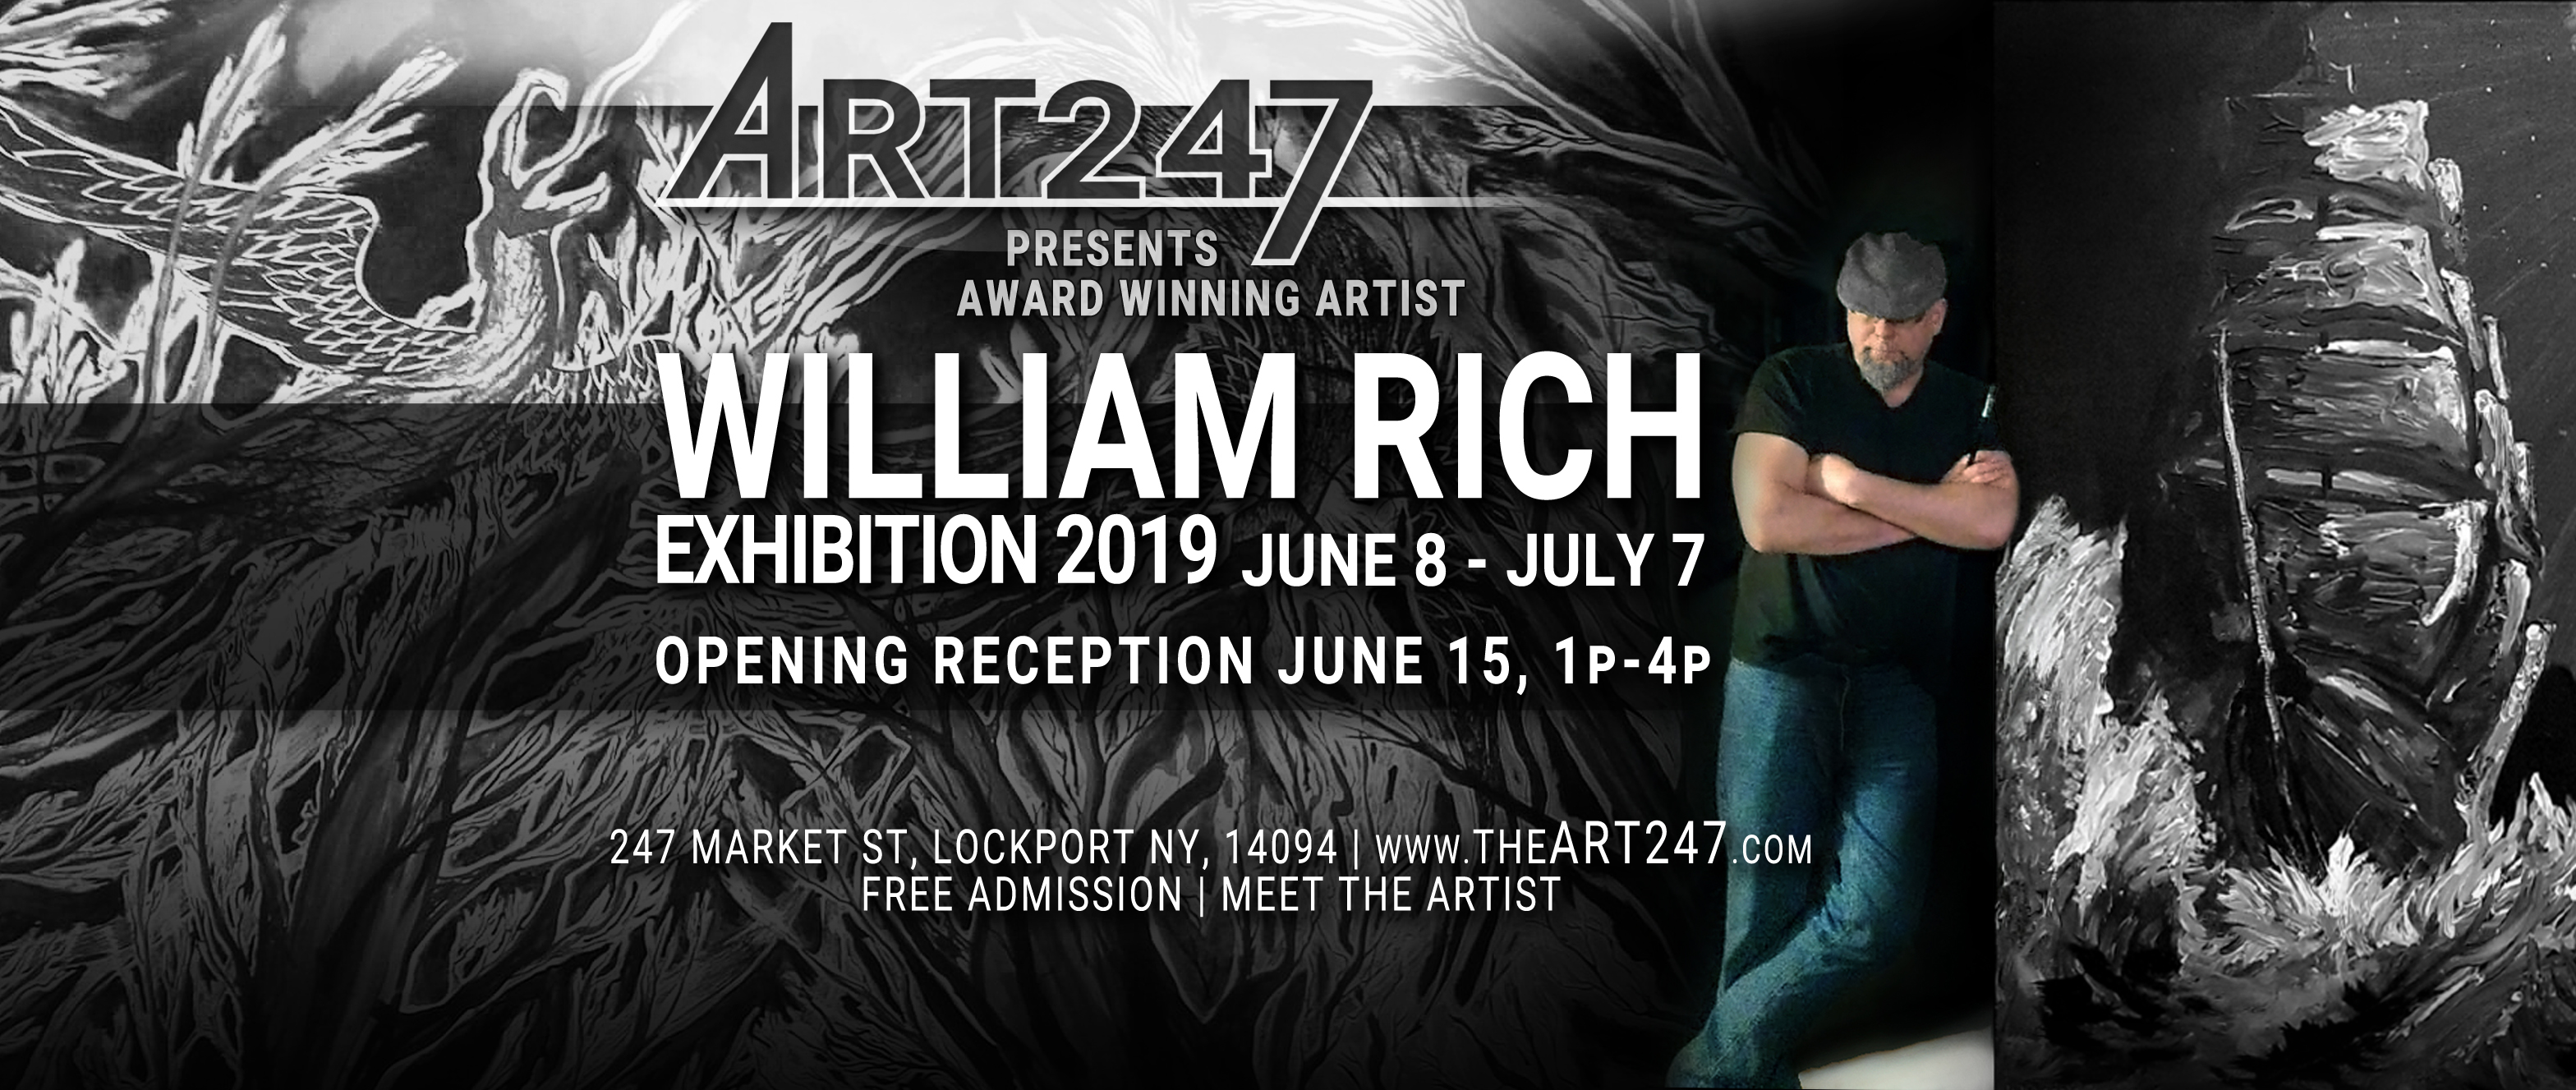 WILLIAM RICH | Exhibition 2019